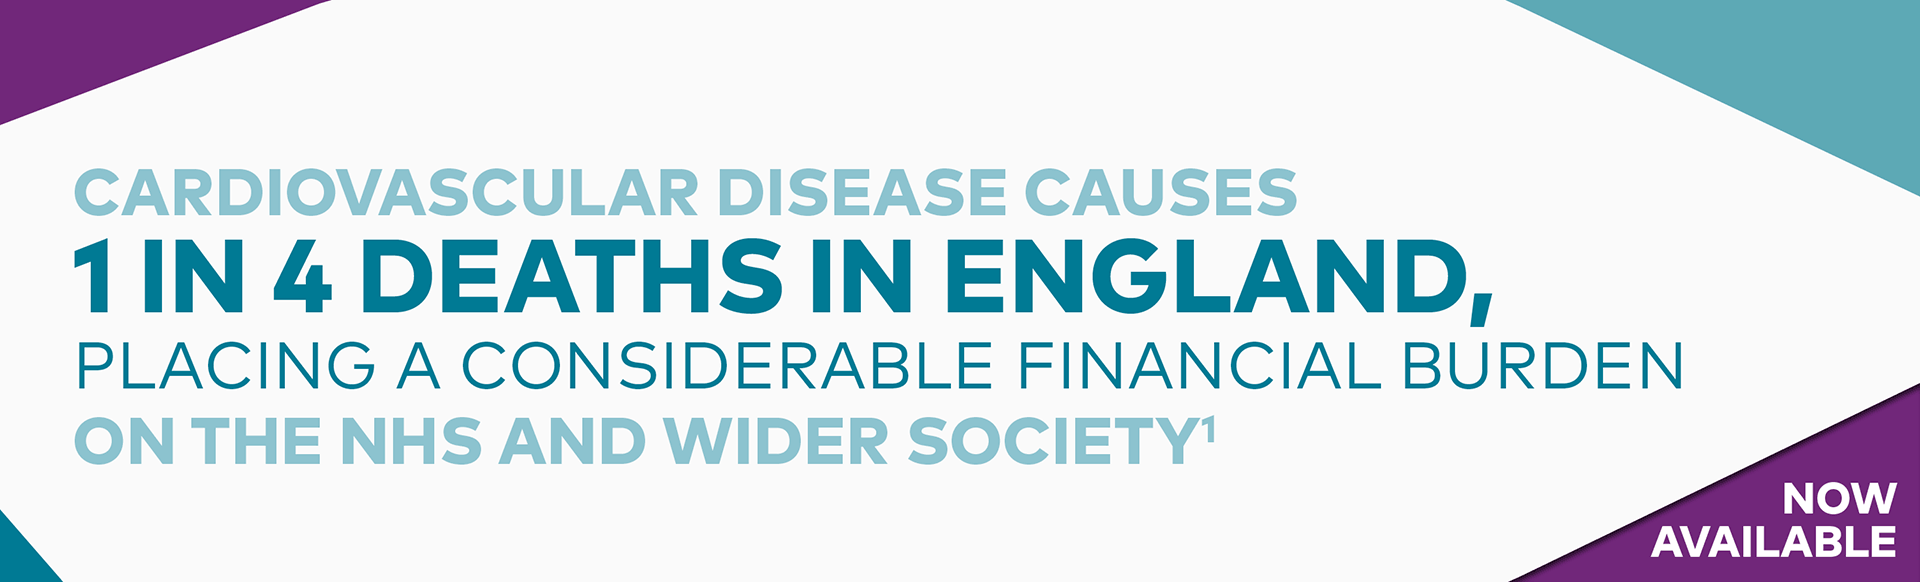 Top banner. Branded banner: Cardiovascular disease causes 1 in 4 deaths in England, placing a considerable financial burden on the NHS and wider society.